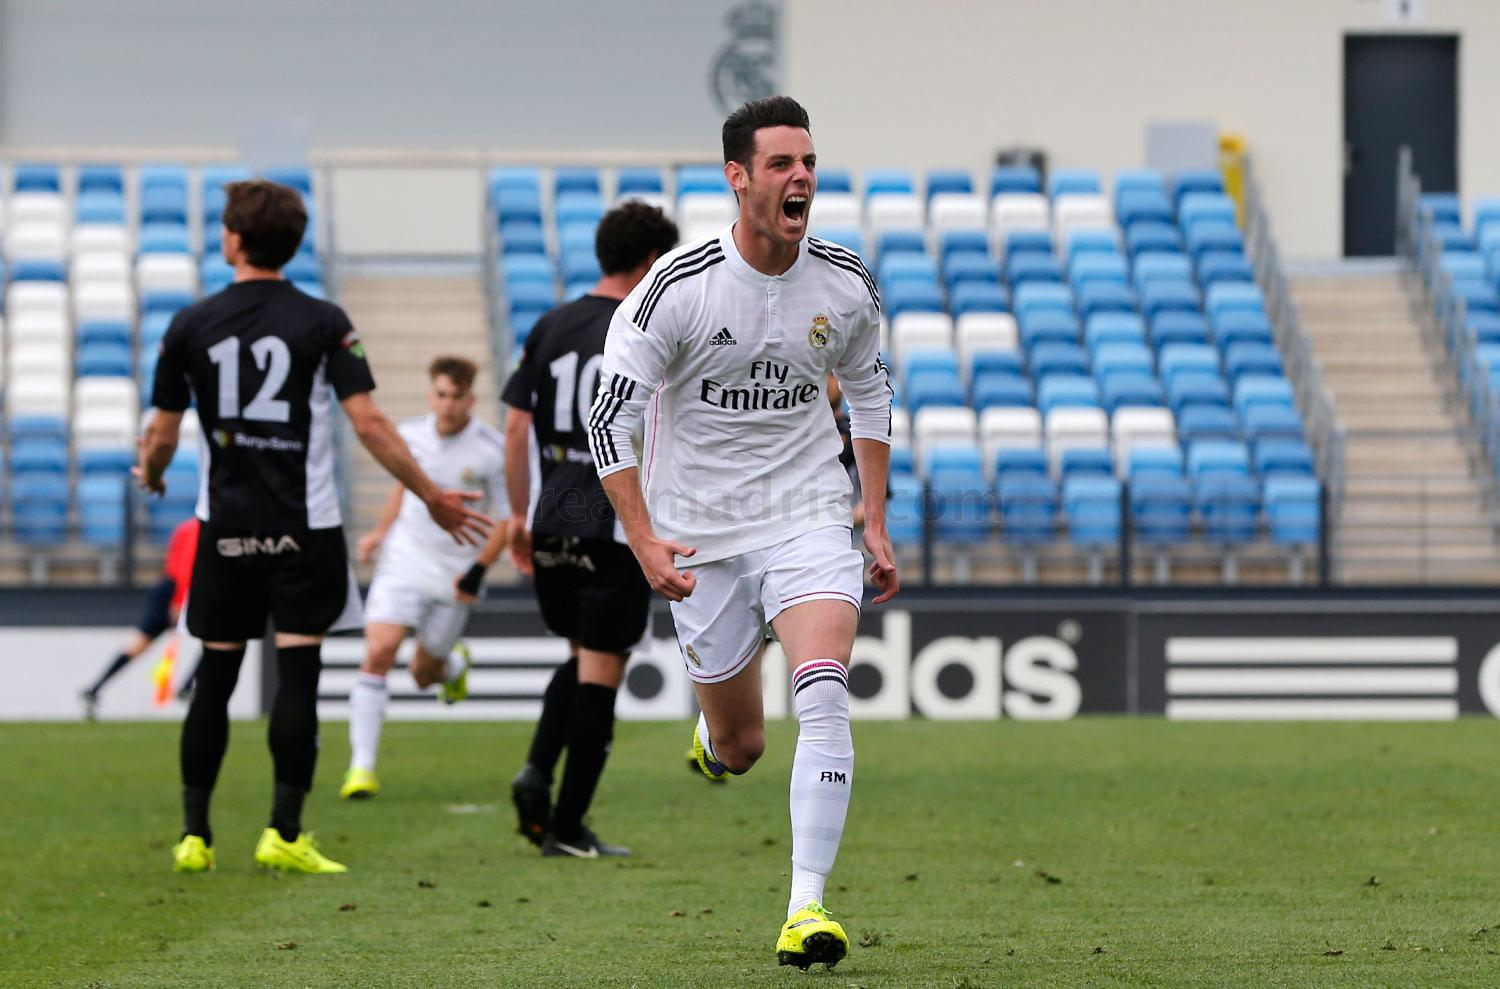 Real Madrid - Real Madrid Castilla - Tudelano - 12-04-2015